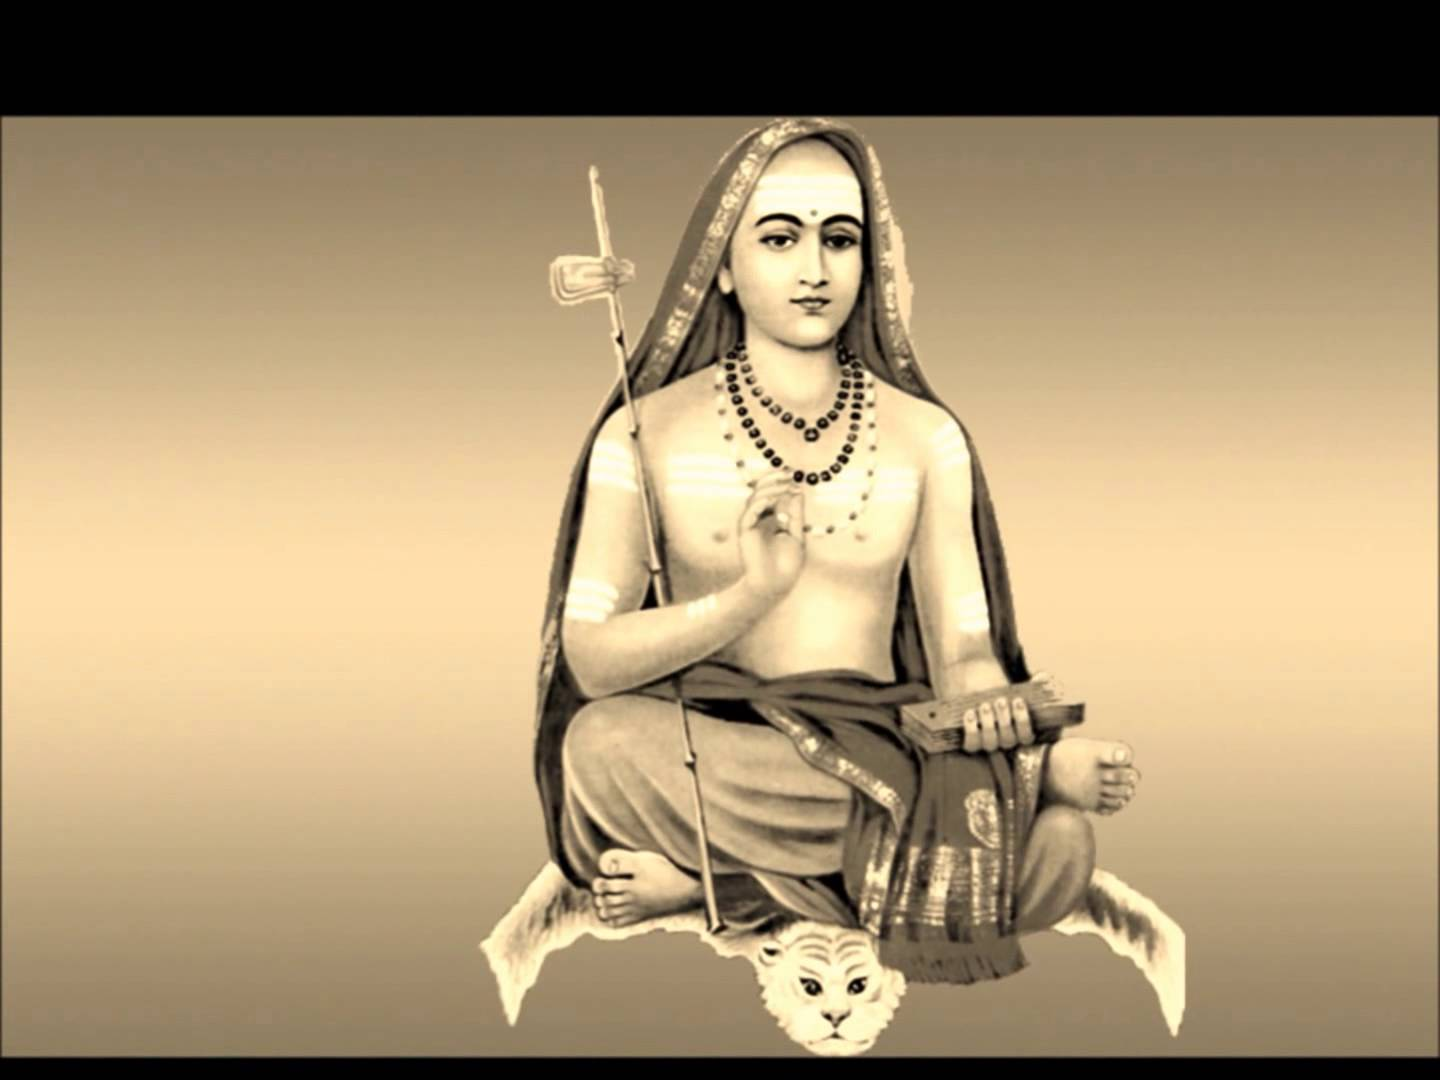 BHARAT DARSHAN - THREE GREAT TEACHERS OF INDIA: IN SHANKARA'S ANALYSIS, MAN IS NOT SAVED BY ACQUIRED KNOWLEDGE. MAN CANNOT DIRECTLY RULE OR GOVERN HIS OWN BODY FOR CELLS ARE INDEPENDENT AND ENJOY CELLULAR AUTONOMY.